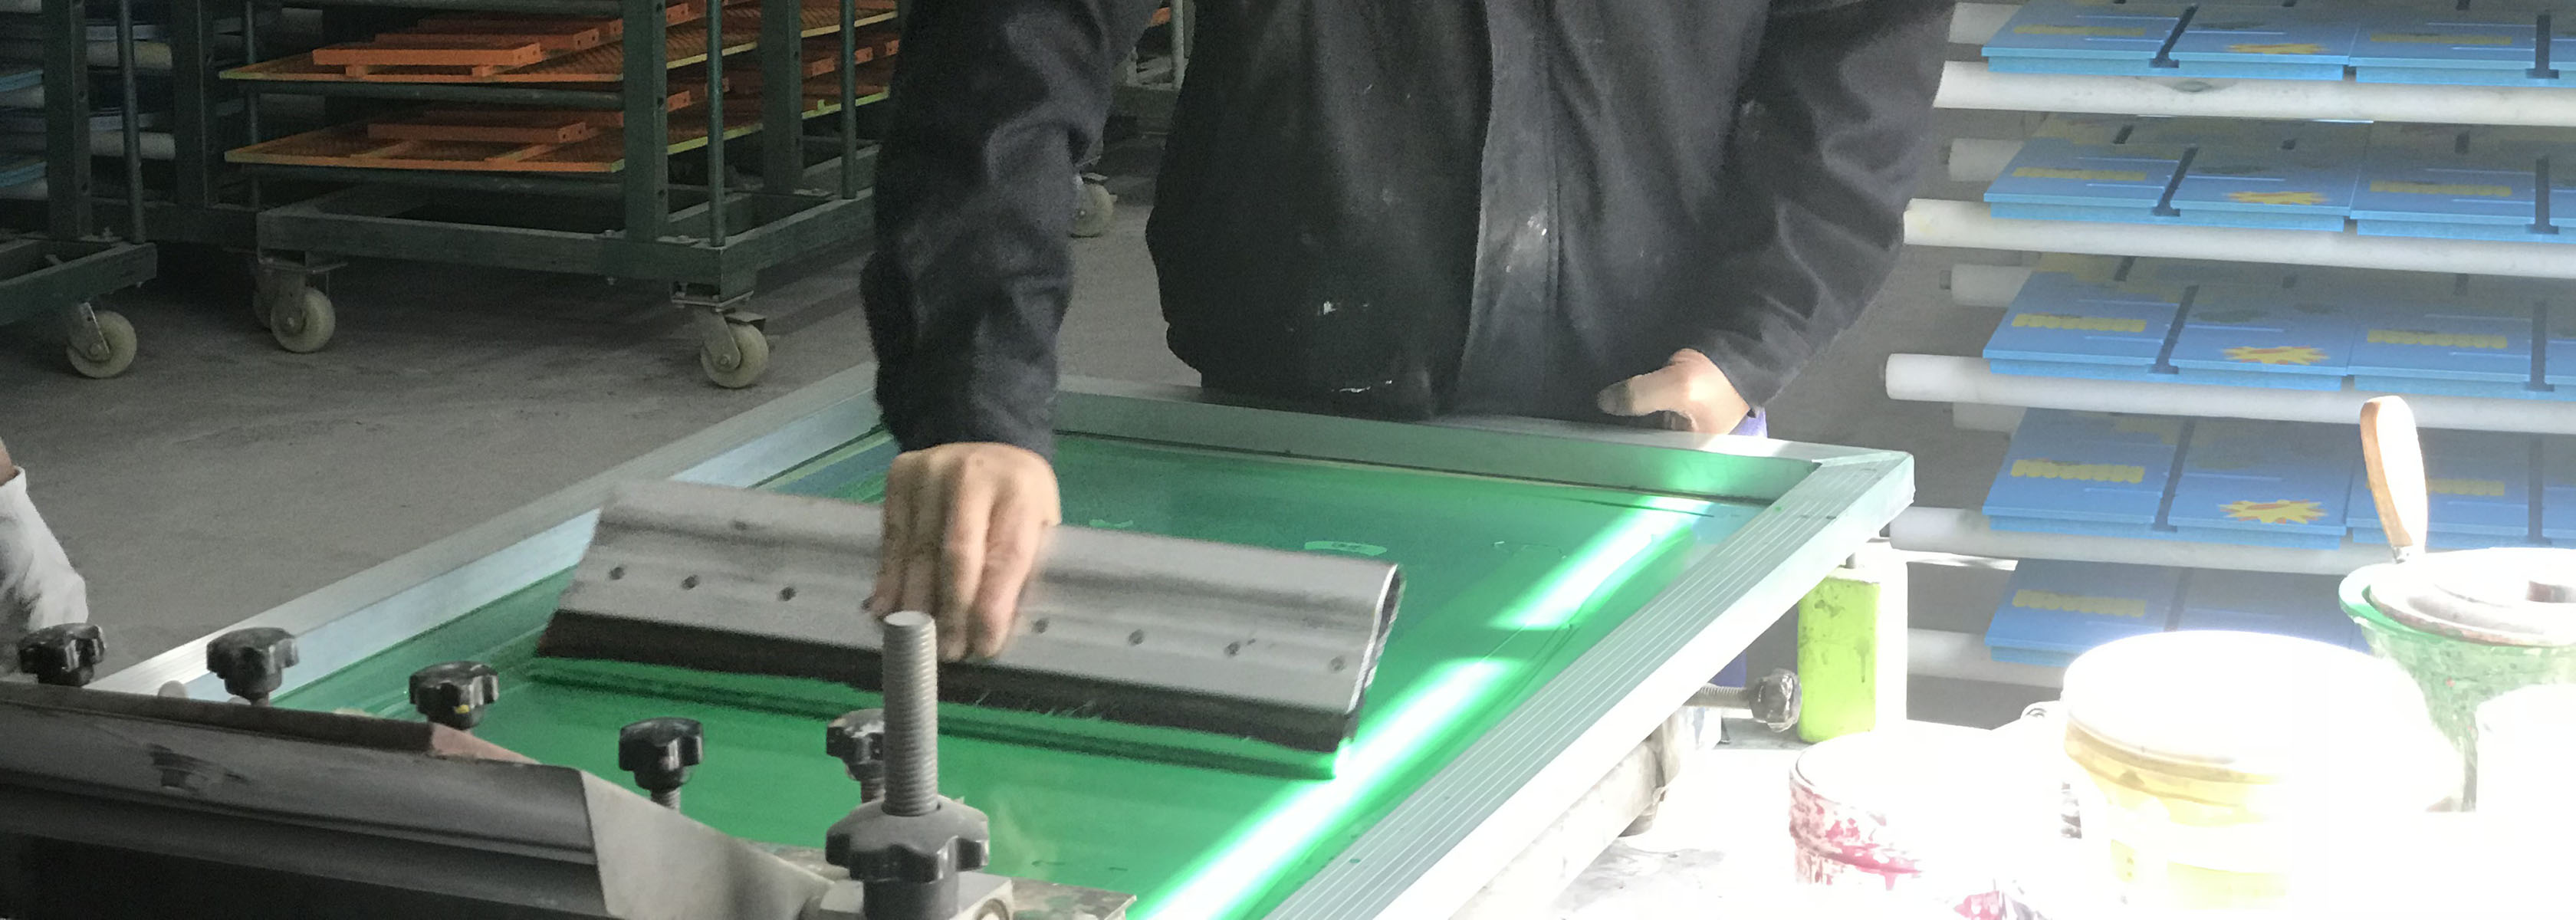 this image shows screen printing